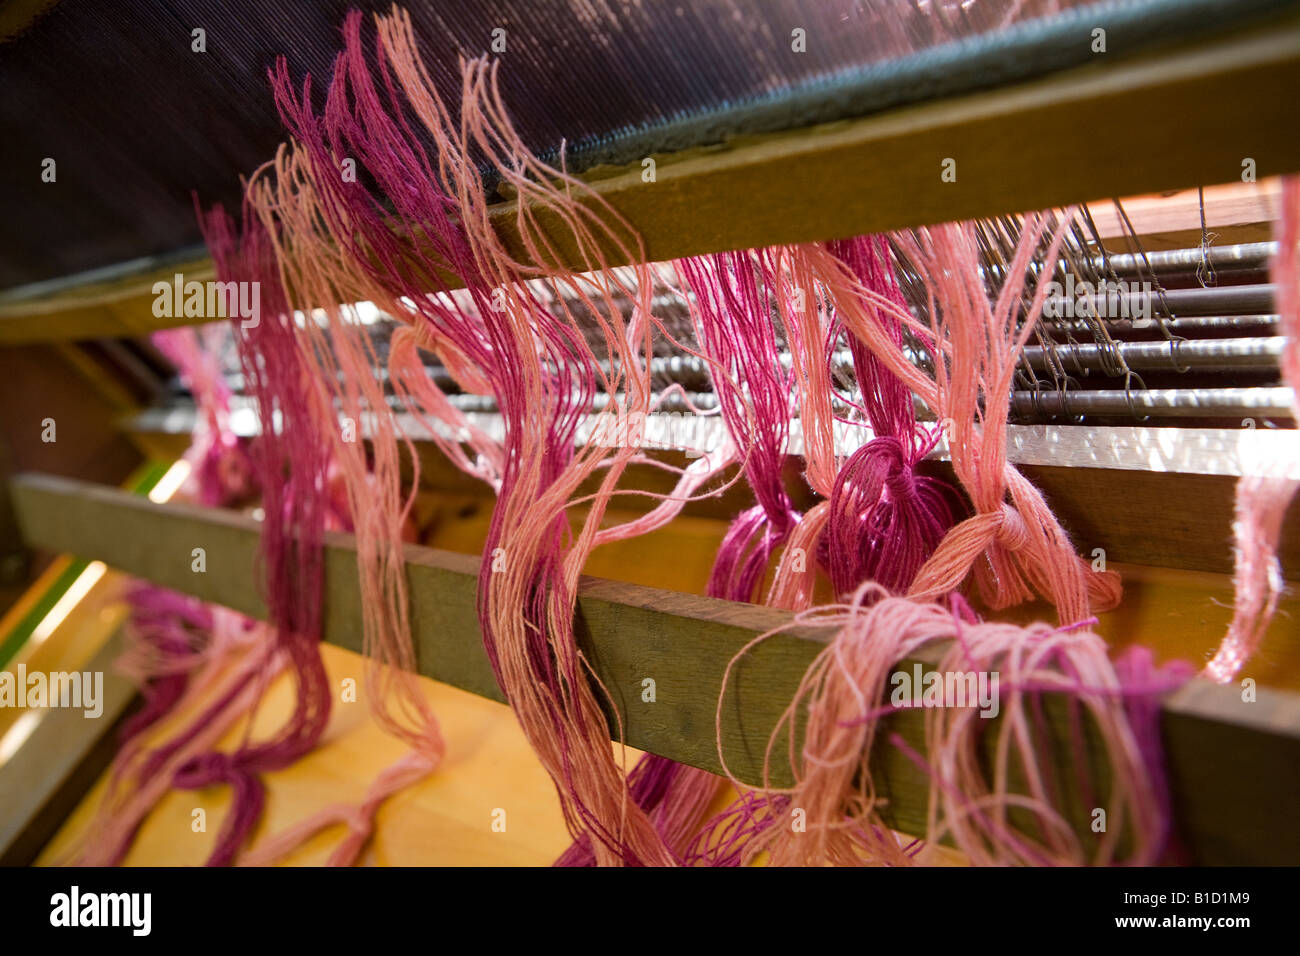 Wool on a loom - Stock Image